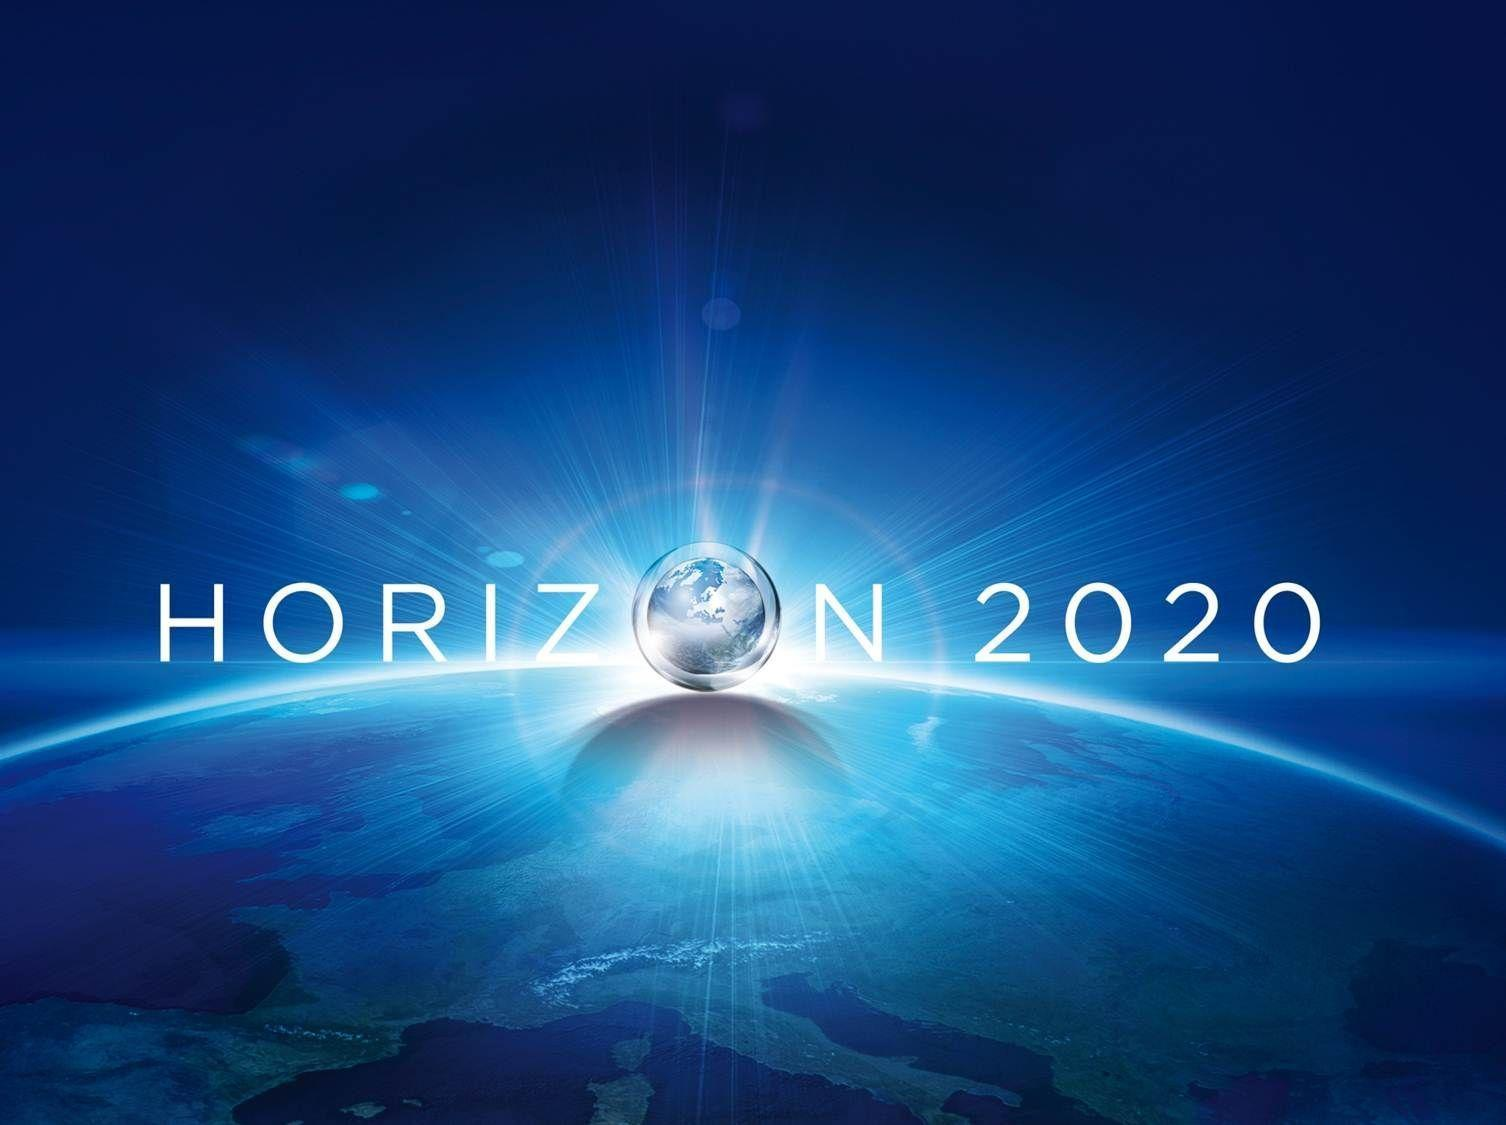 Horizon 2020 Offers New Opportunities for Research and Innovation in the Field of Security